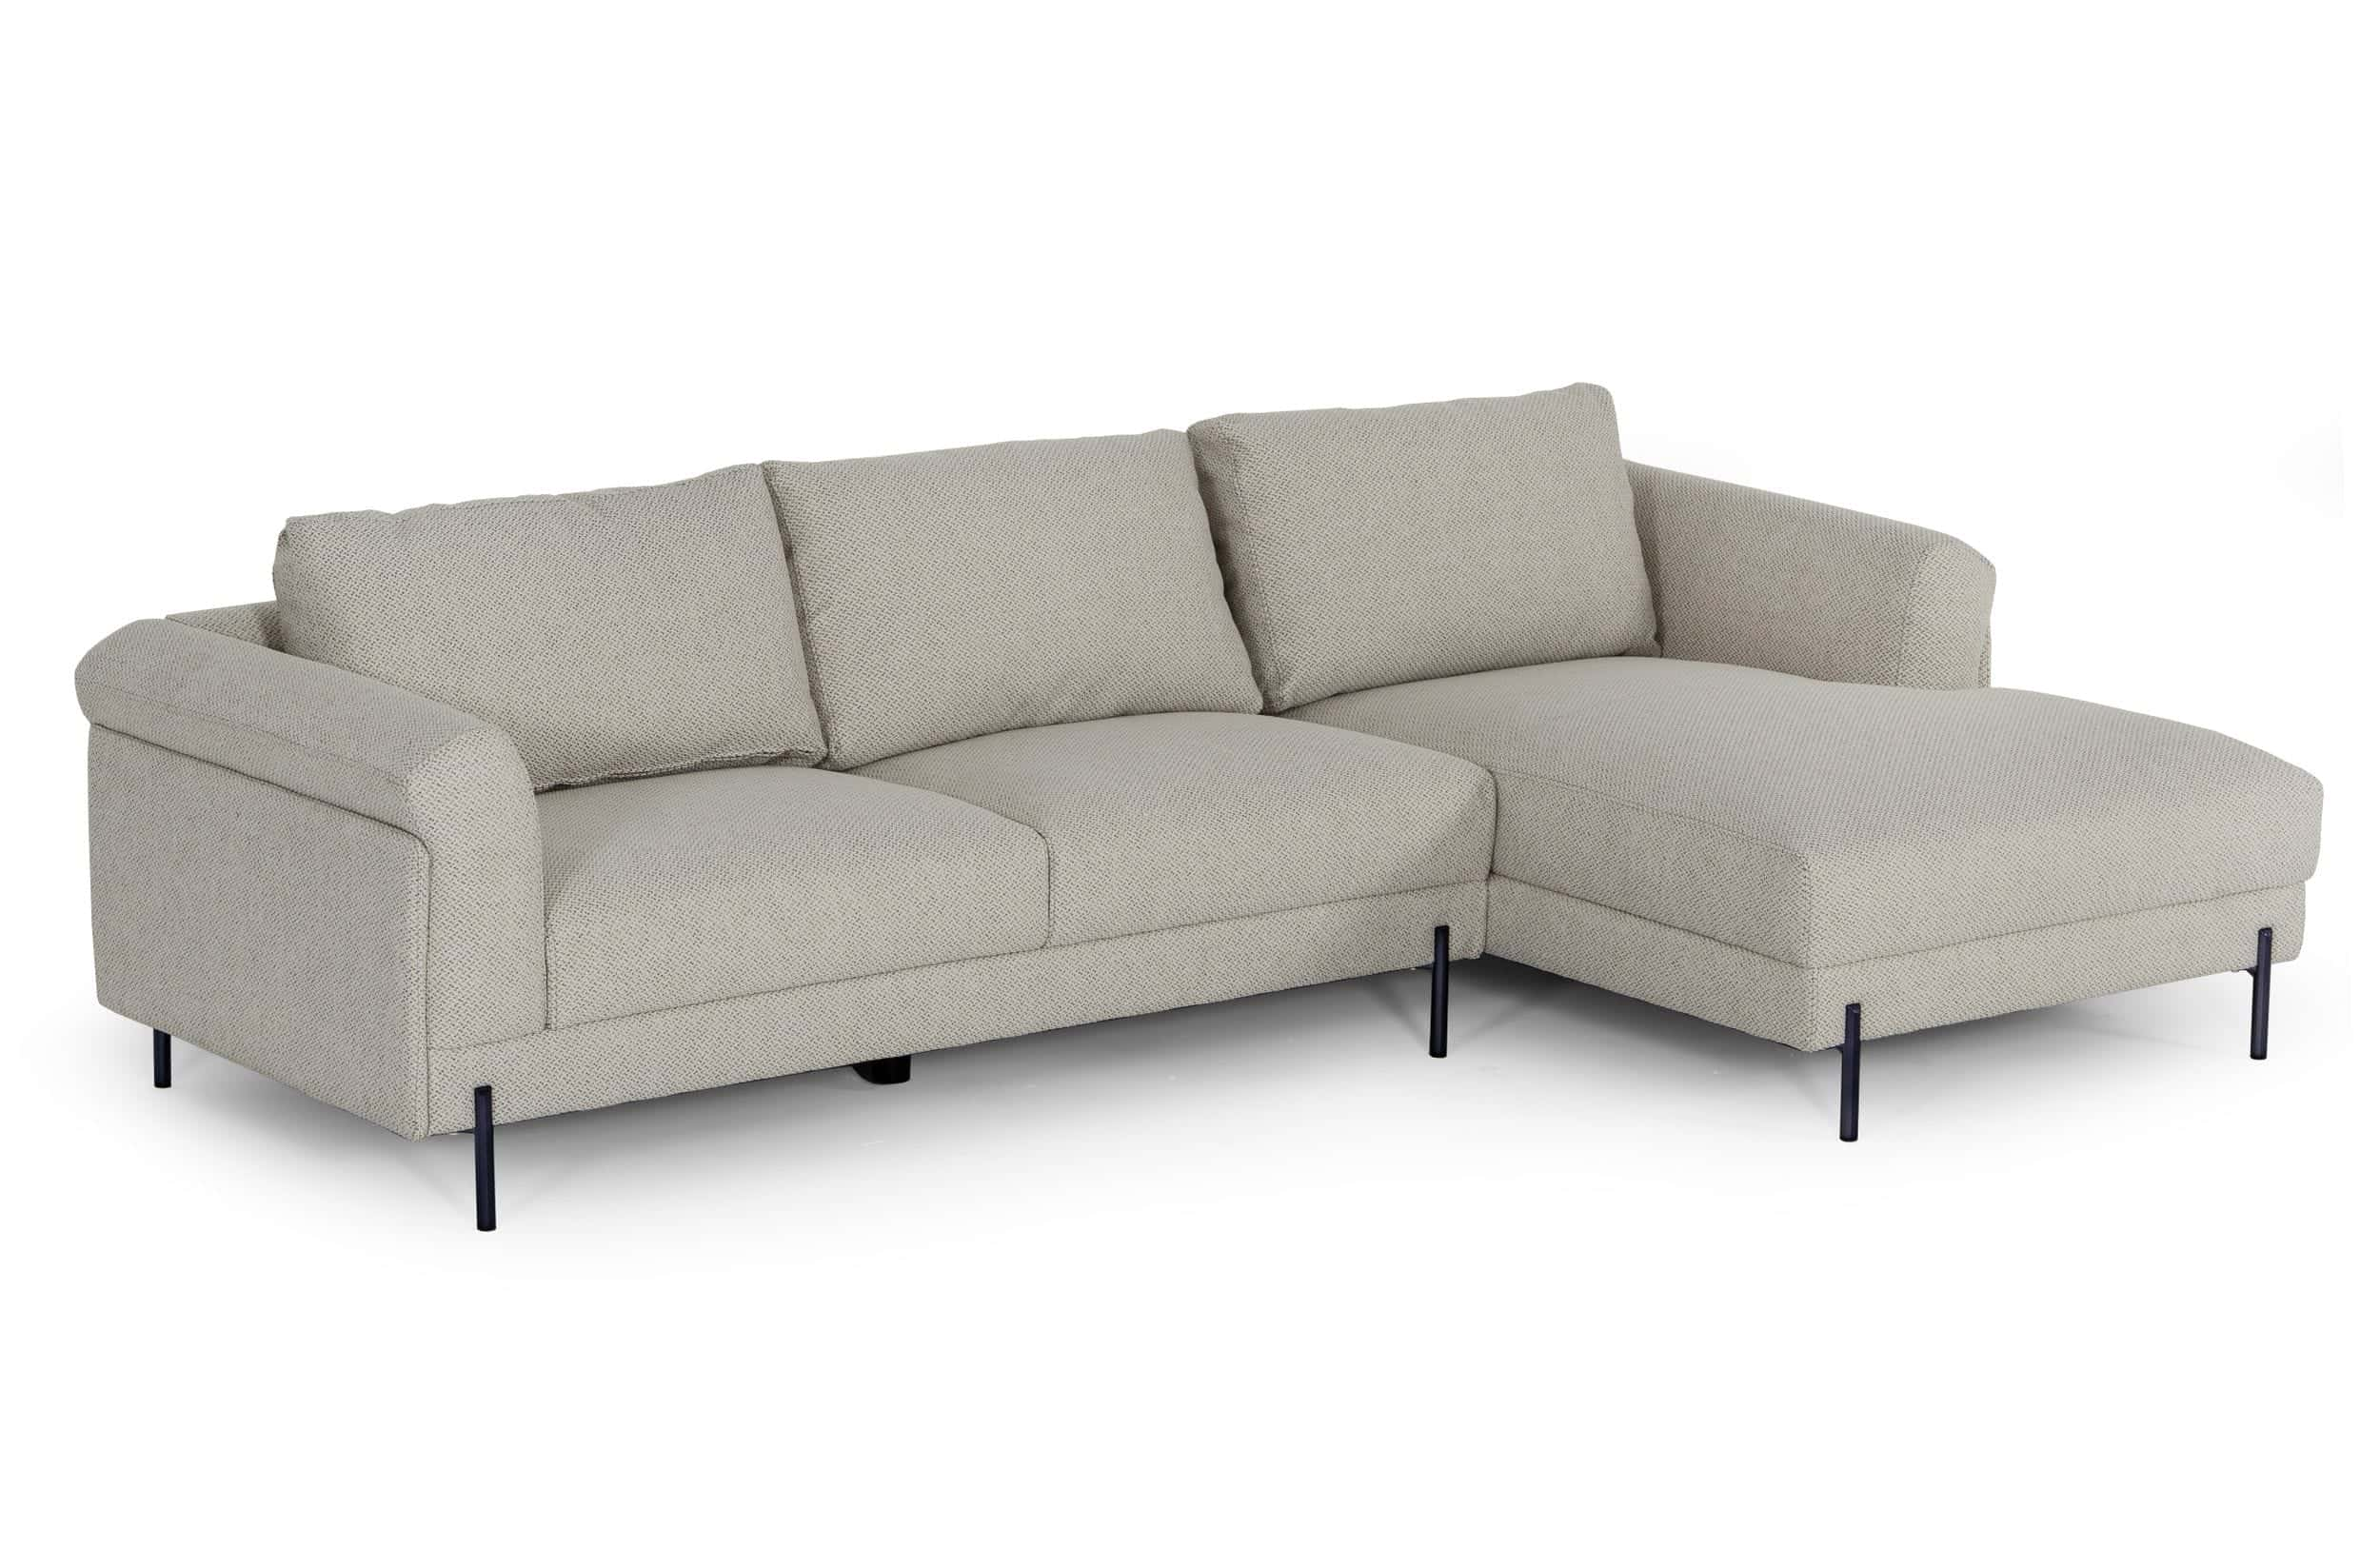 Divani Casa Hello Modern Sectional Sofa W Right Facing Chaise By Vig Furniture